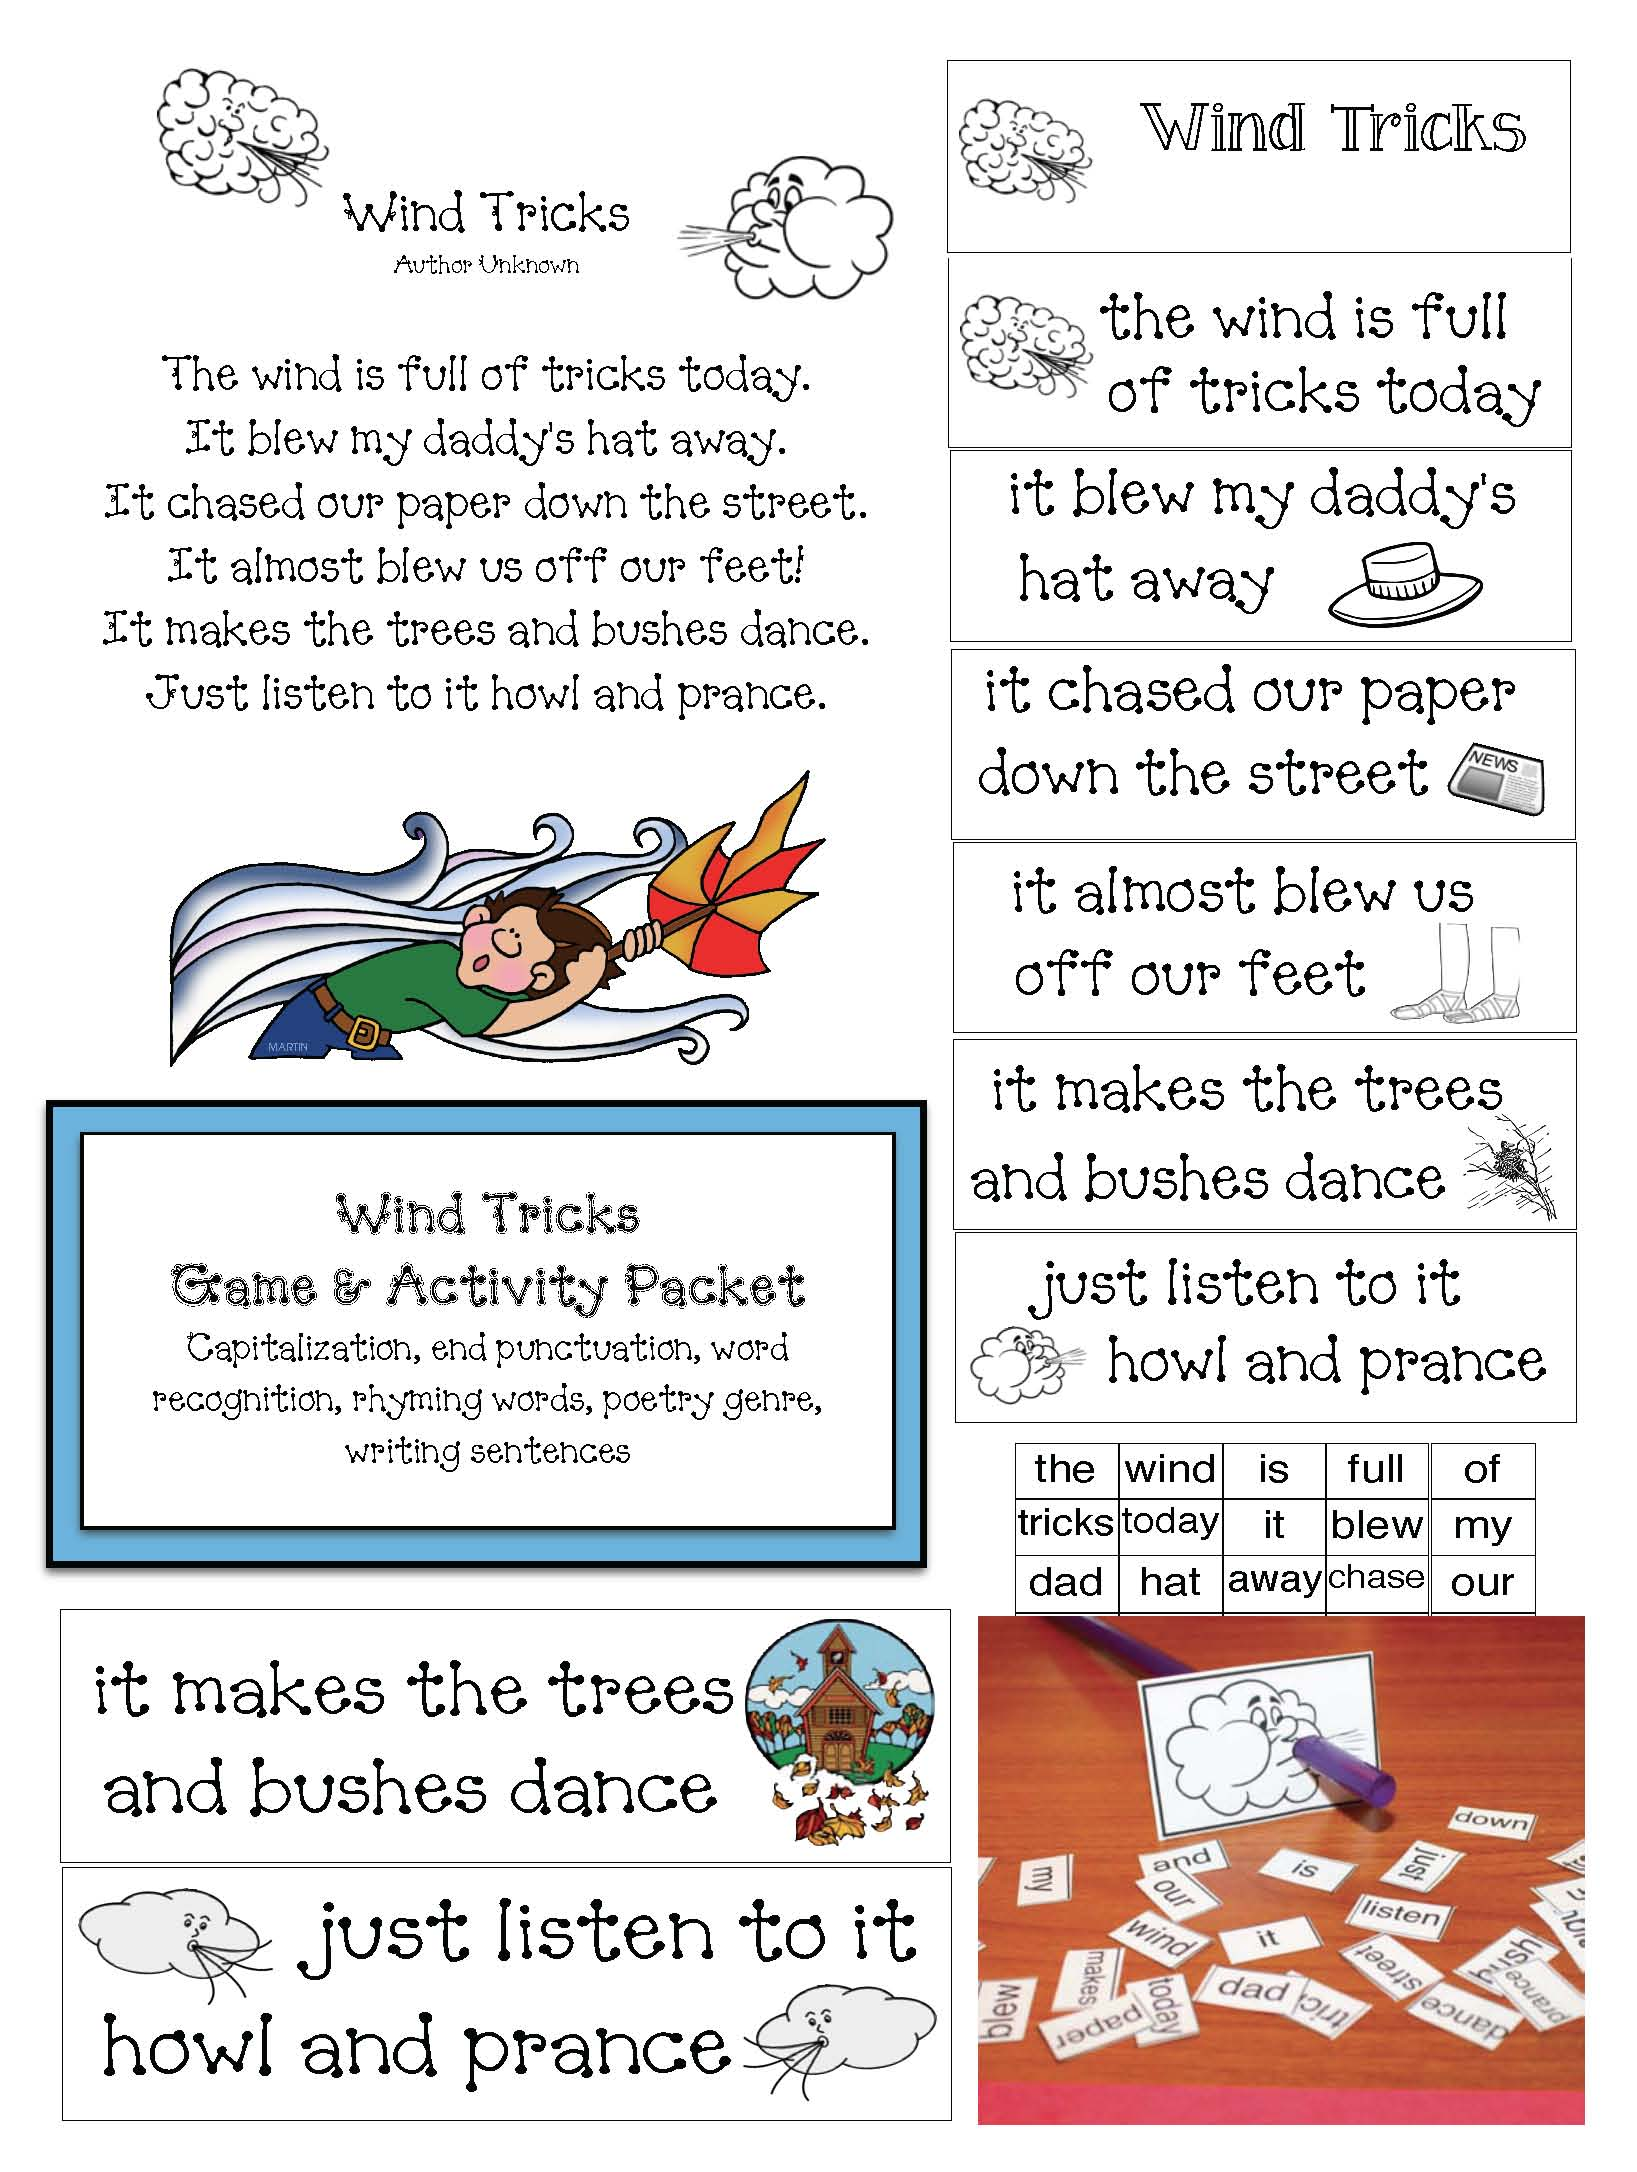 lion and lamb activities, weather activities, weather games, weather centers, march bulletin boards, march writing prompts, lion crafts, lamb crafts, wind tricks poem, spring poetry, wind poems, sheep activities